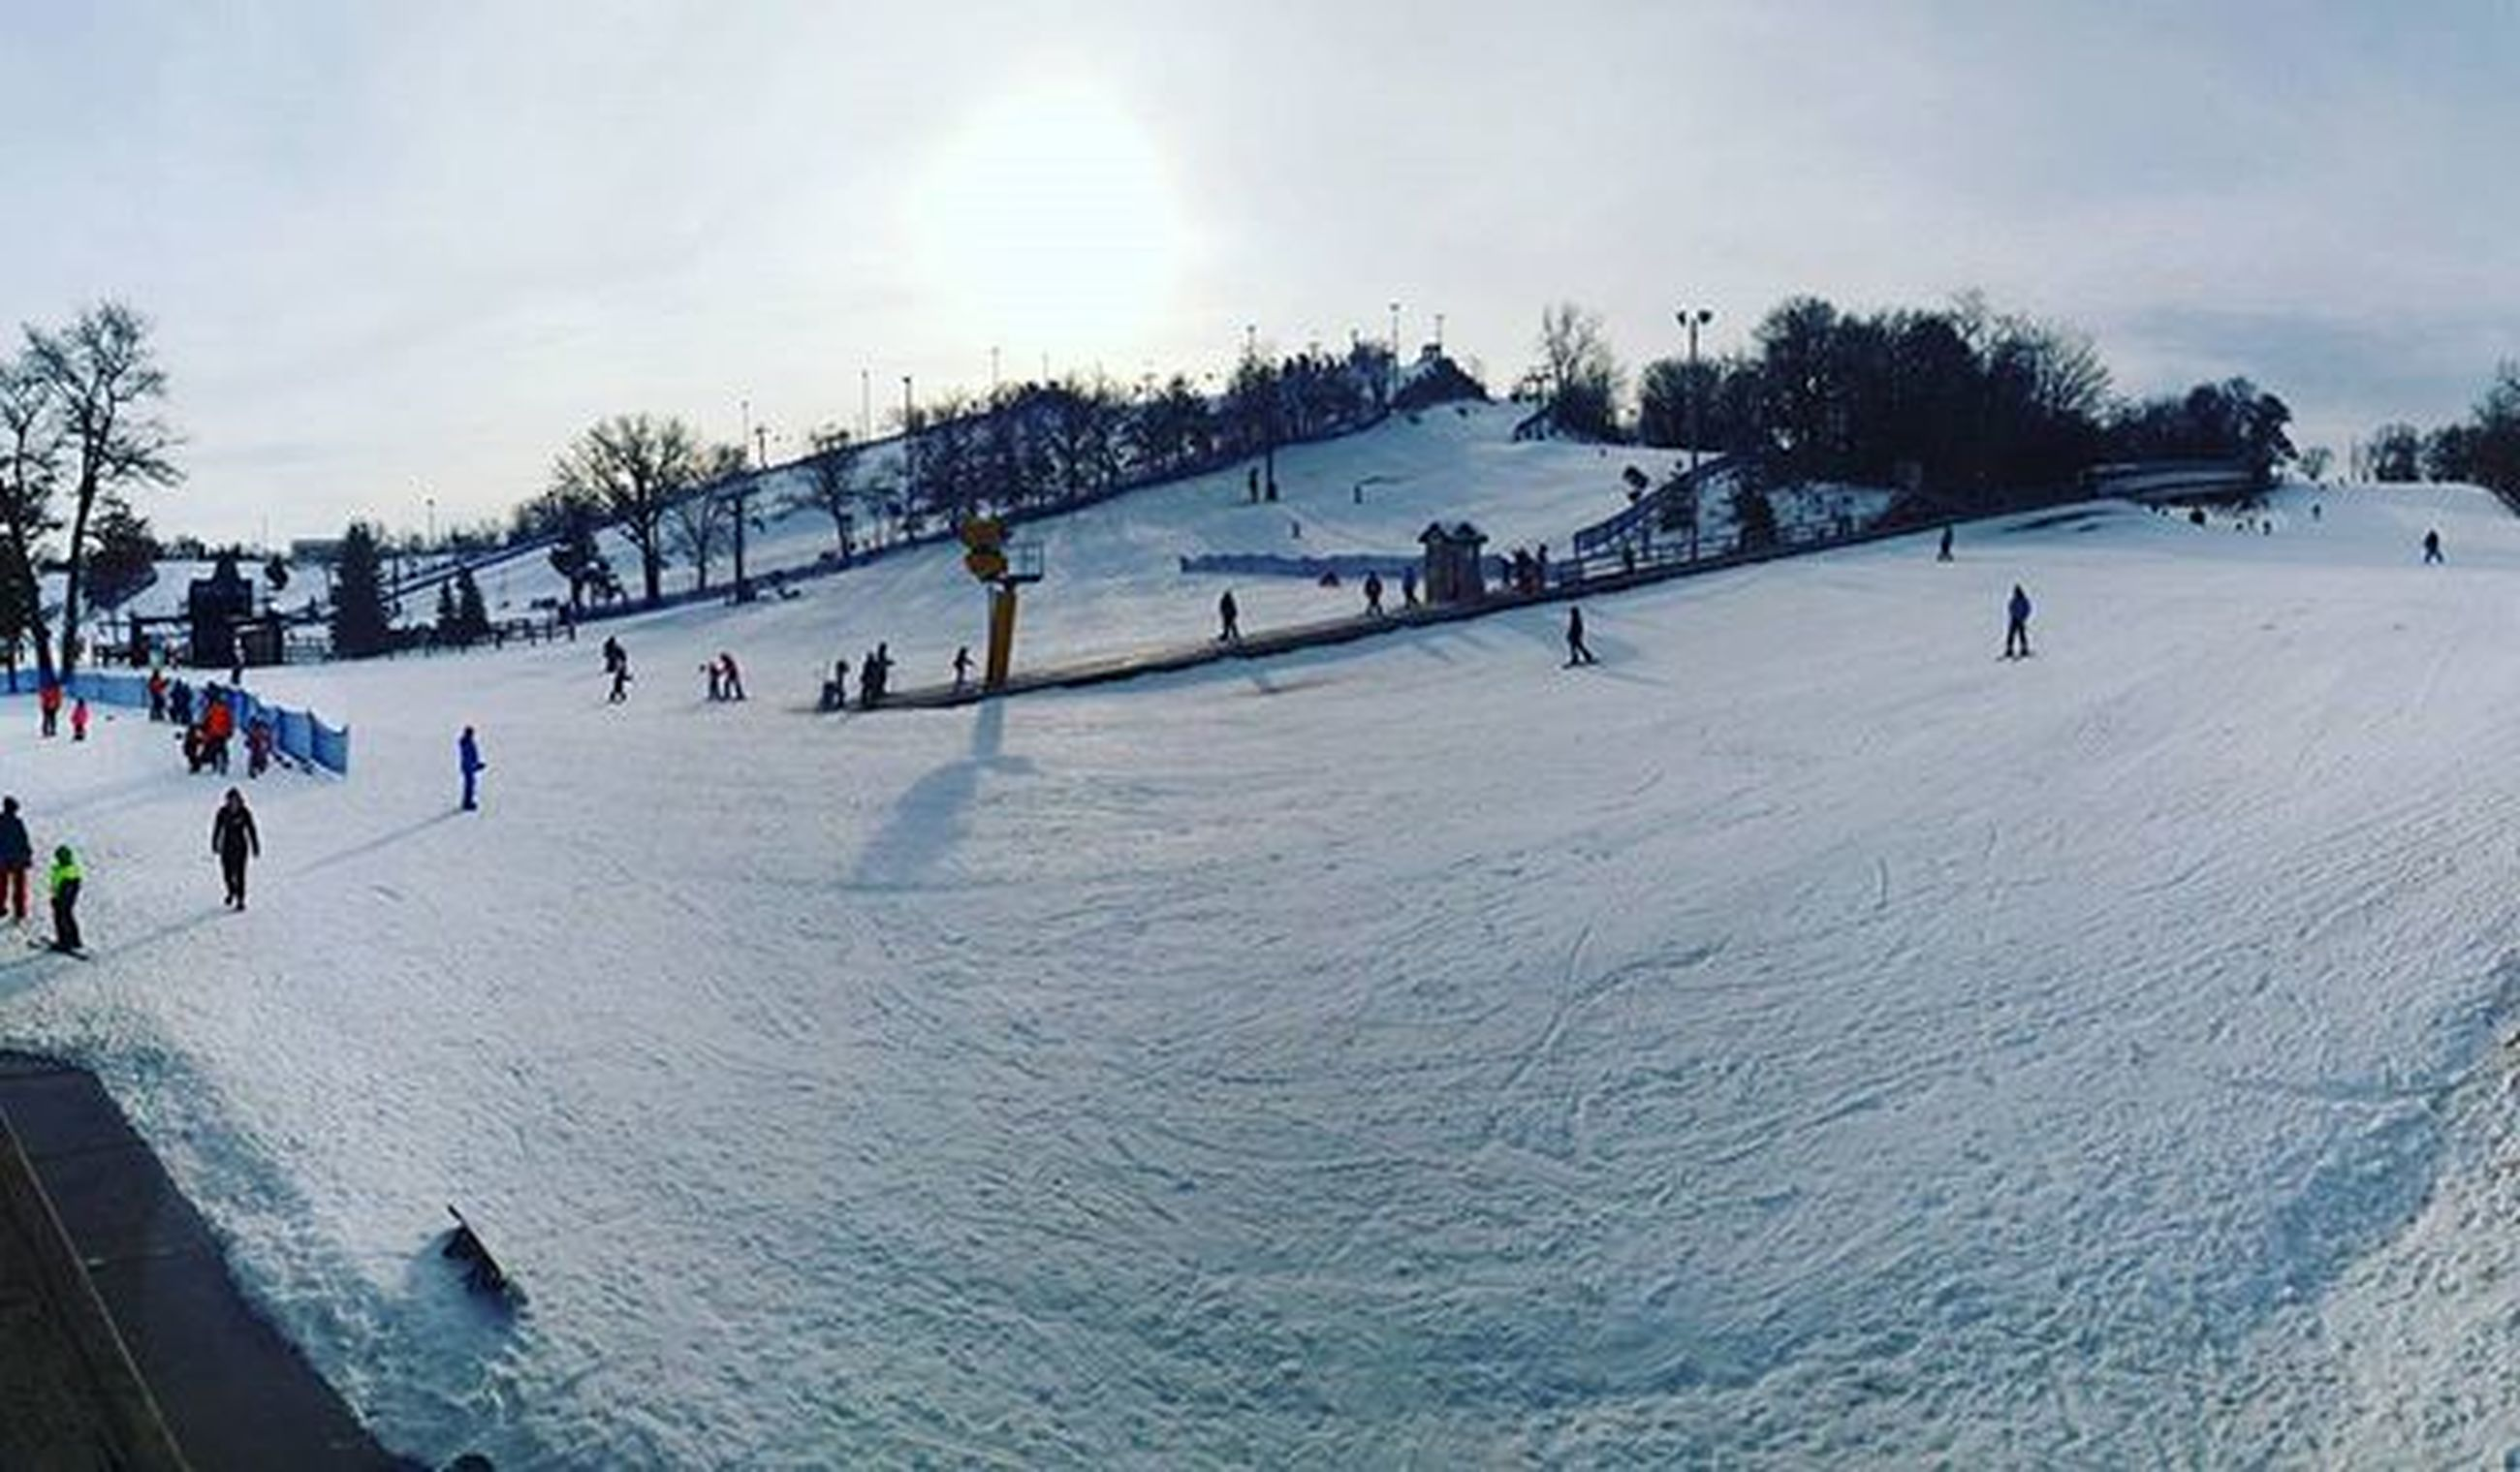 snow, winter, cold temperature, season, weather, sky, covering, large group of people, white color, sunlight, incidental people, nature, frozen, landscape, day, tree, snow covered, tranquility, outdoors